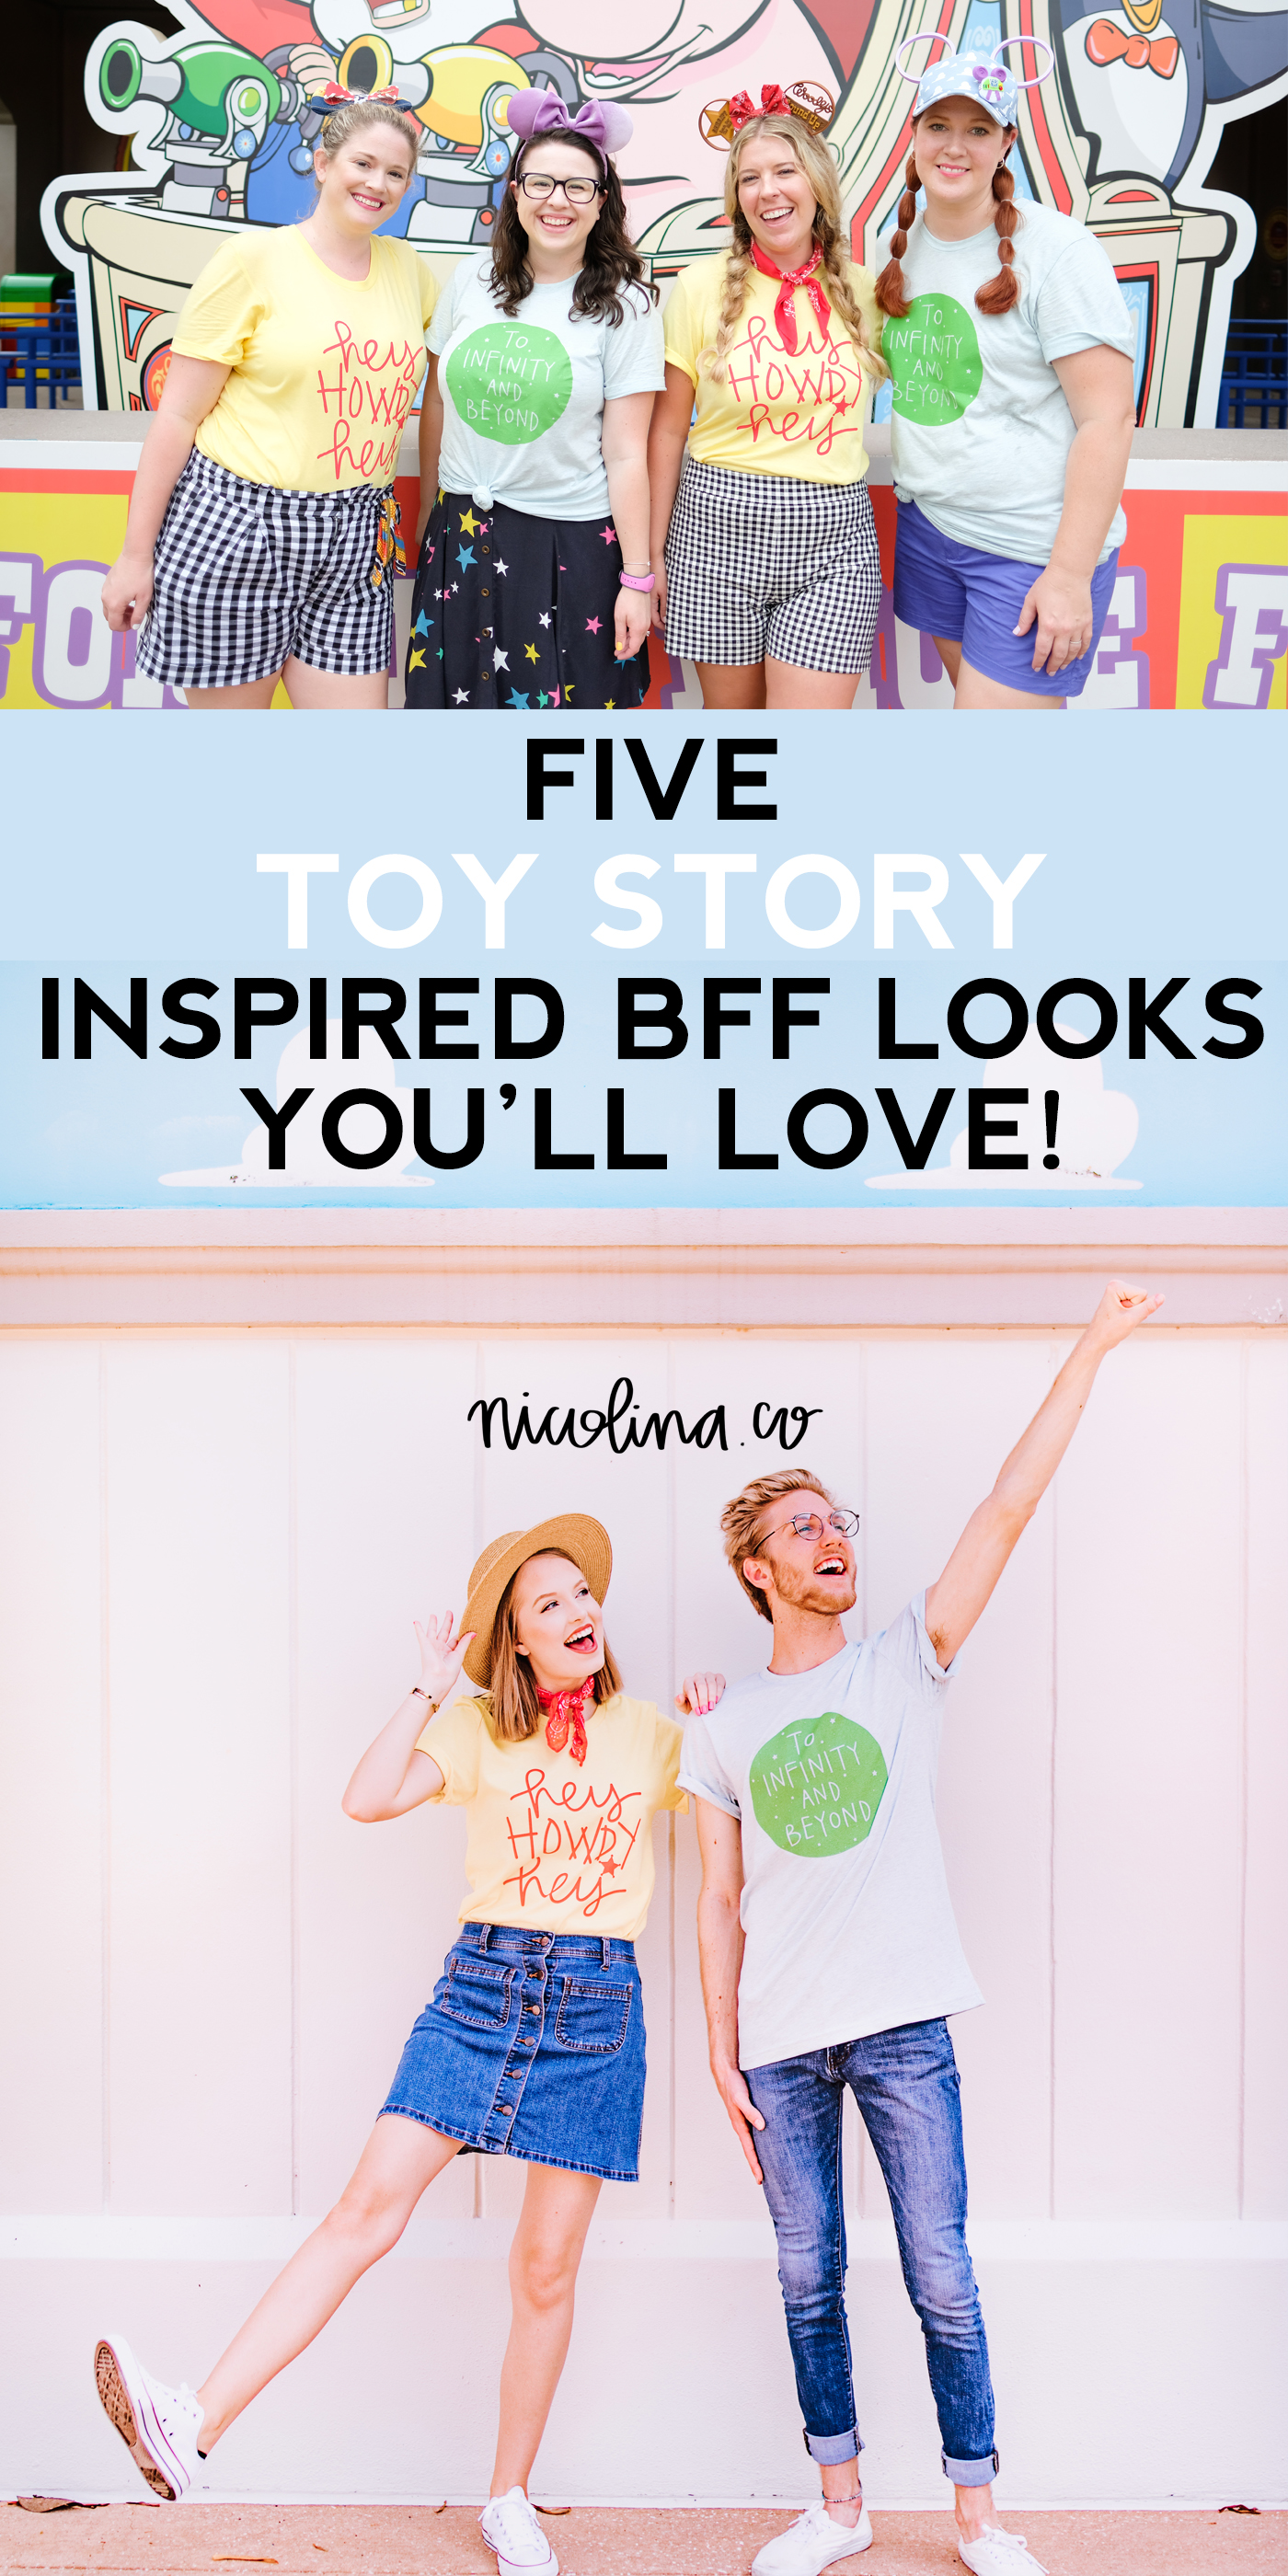 Five Toy Story Inspired BFF Looks You'll Love